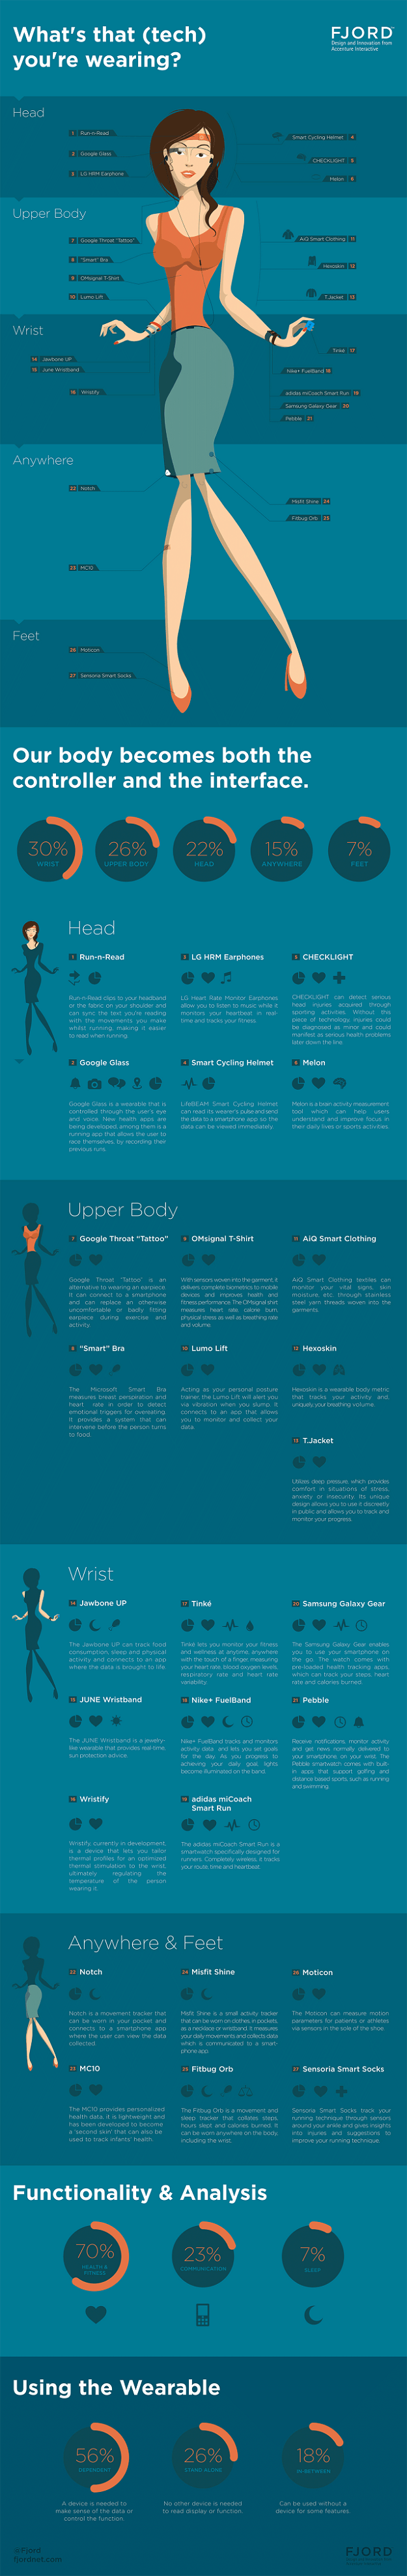 Wearable Tech Infographic: Head to Toe